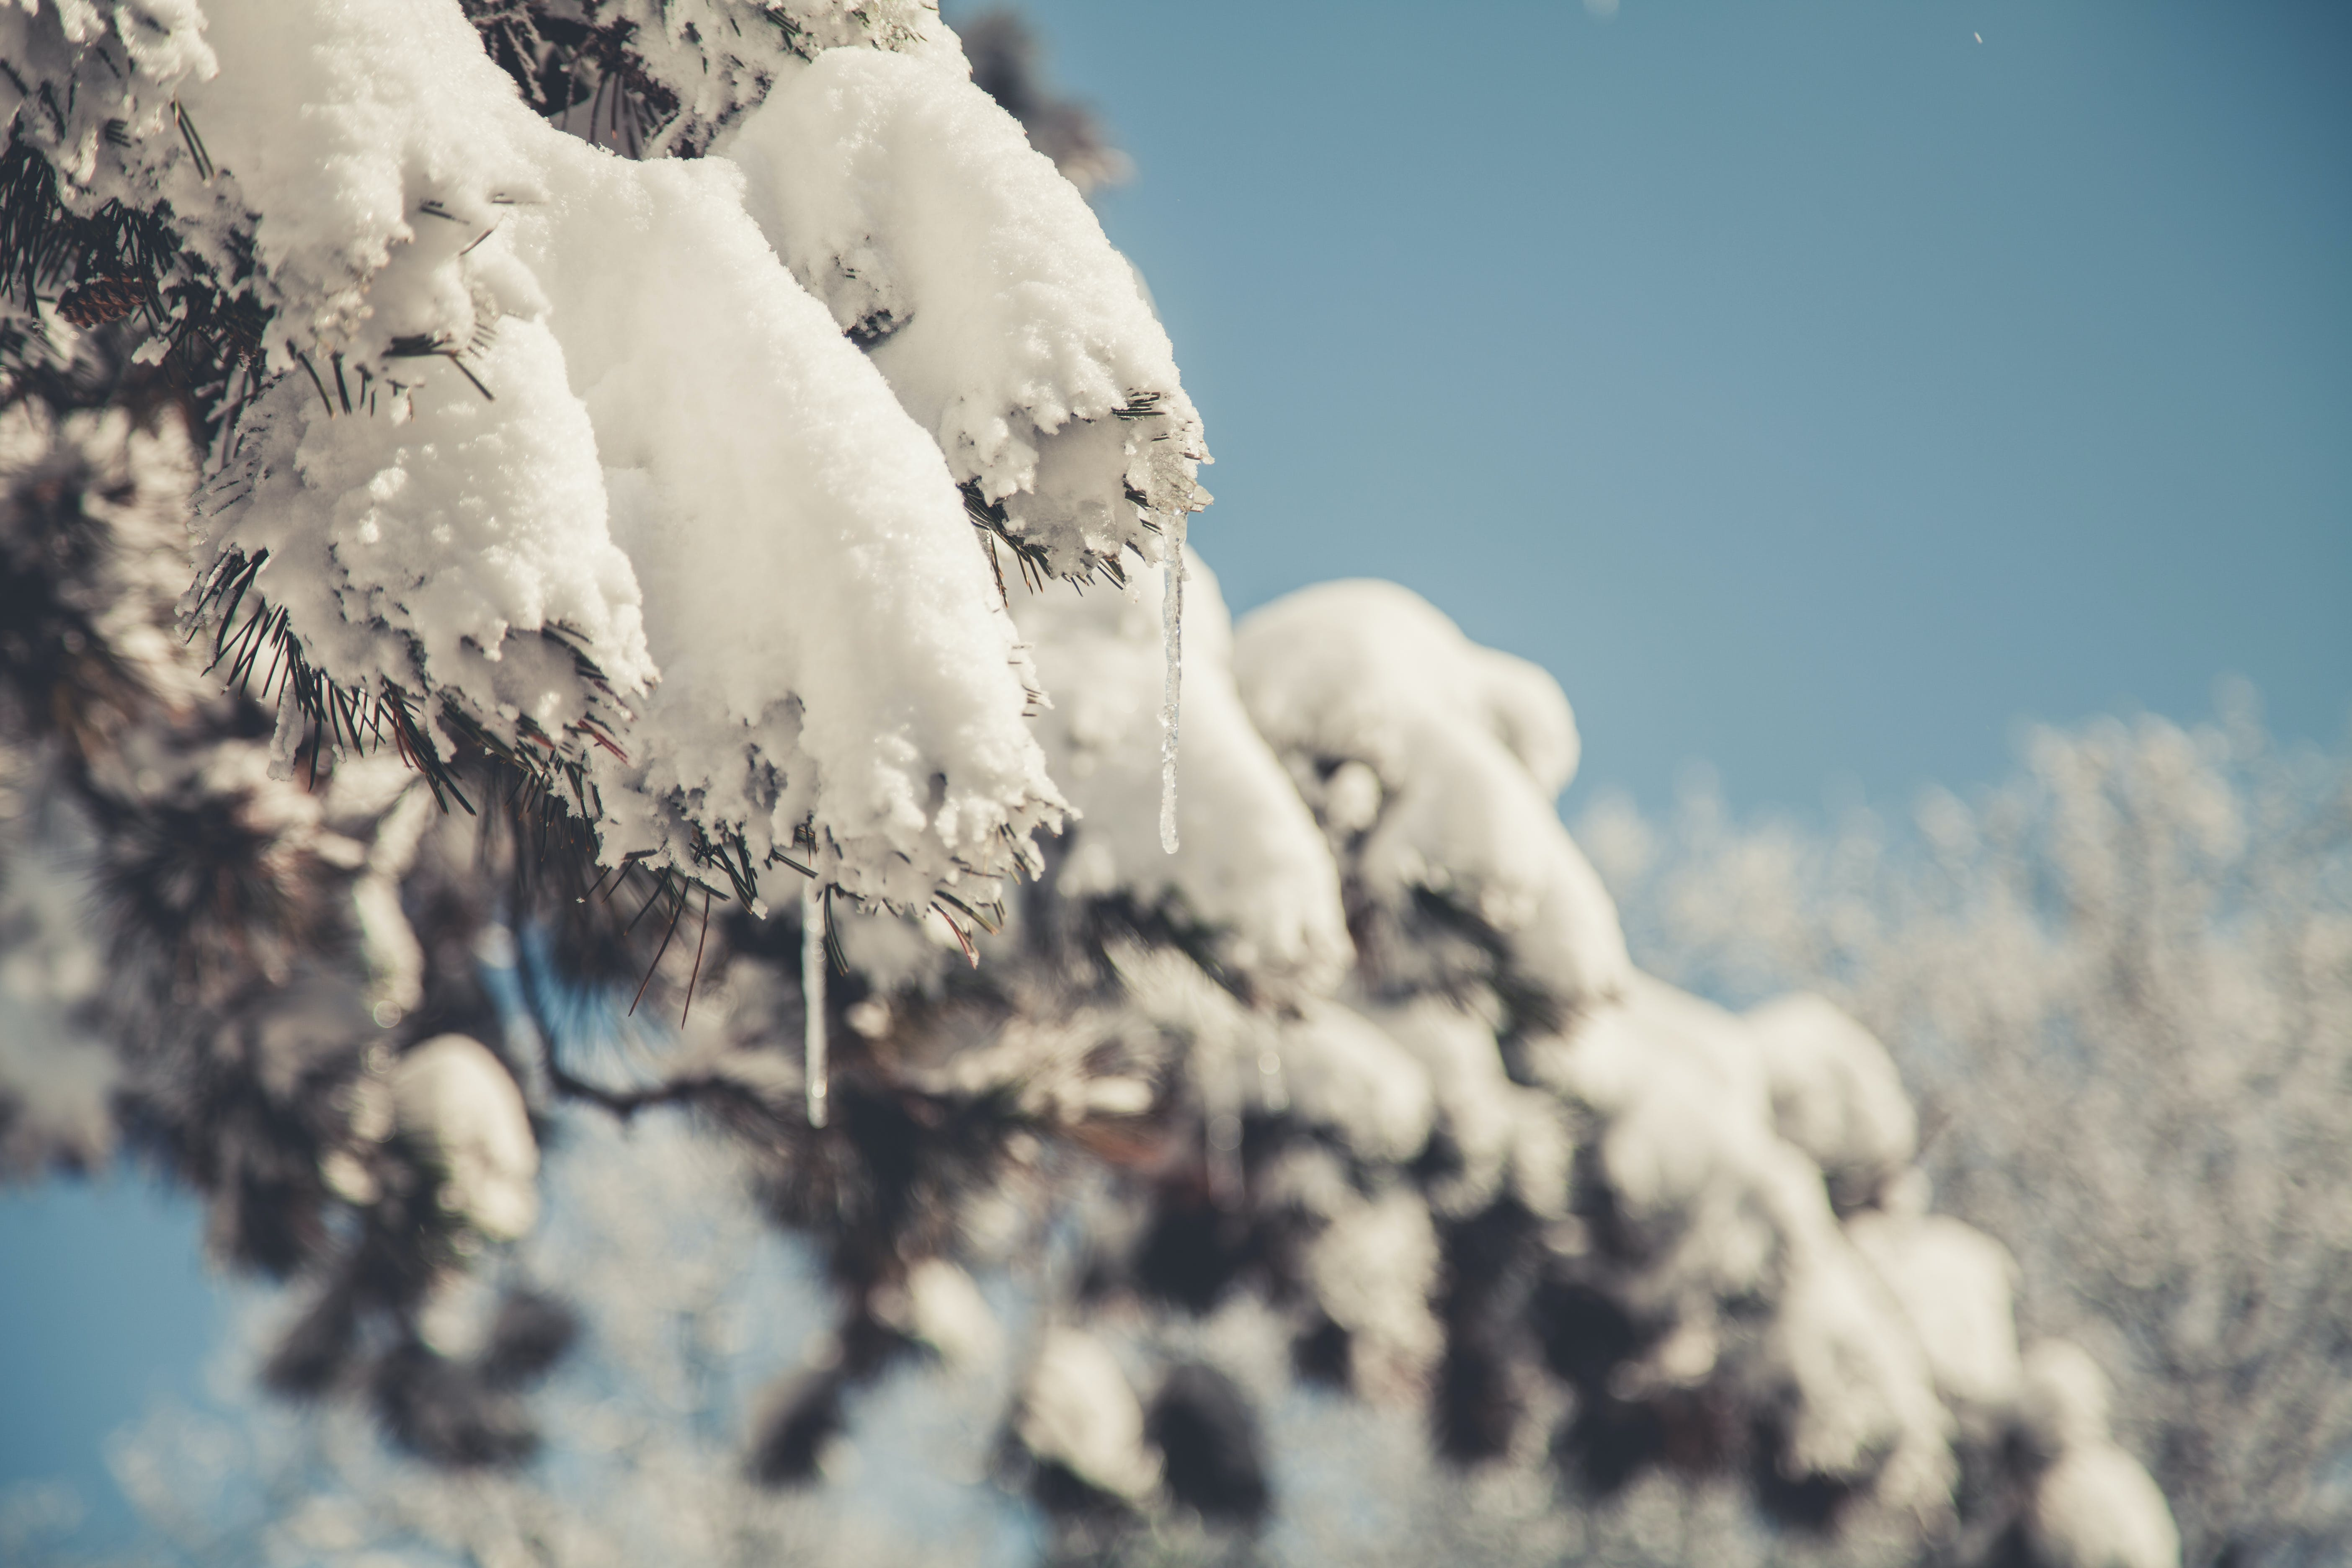 Free stock photo of blur, blurred background, close-up, cold